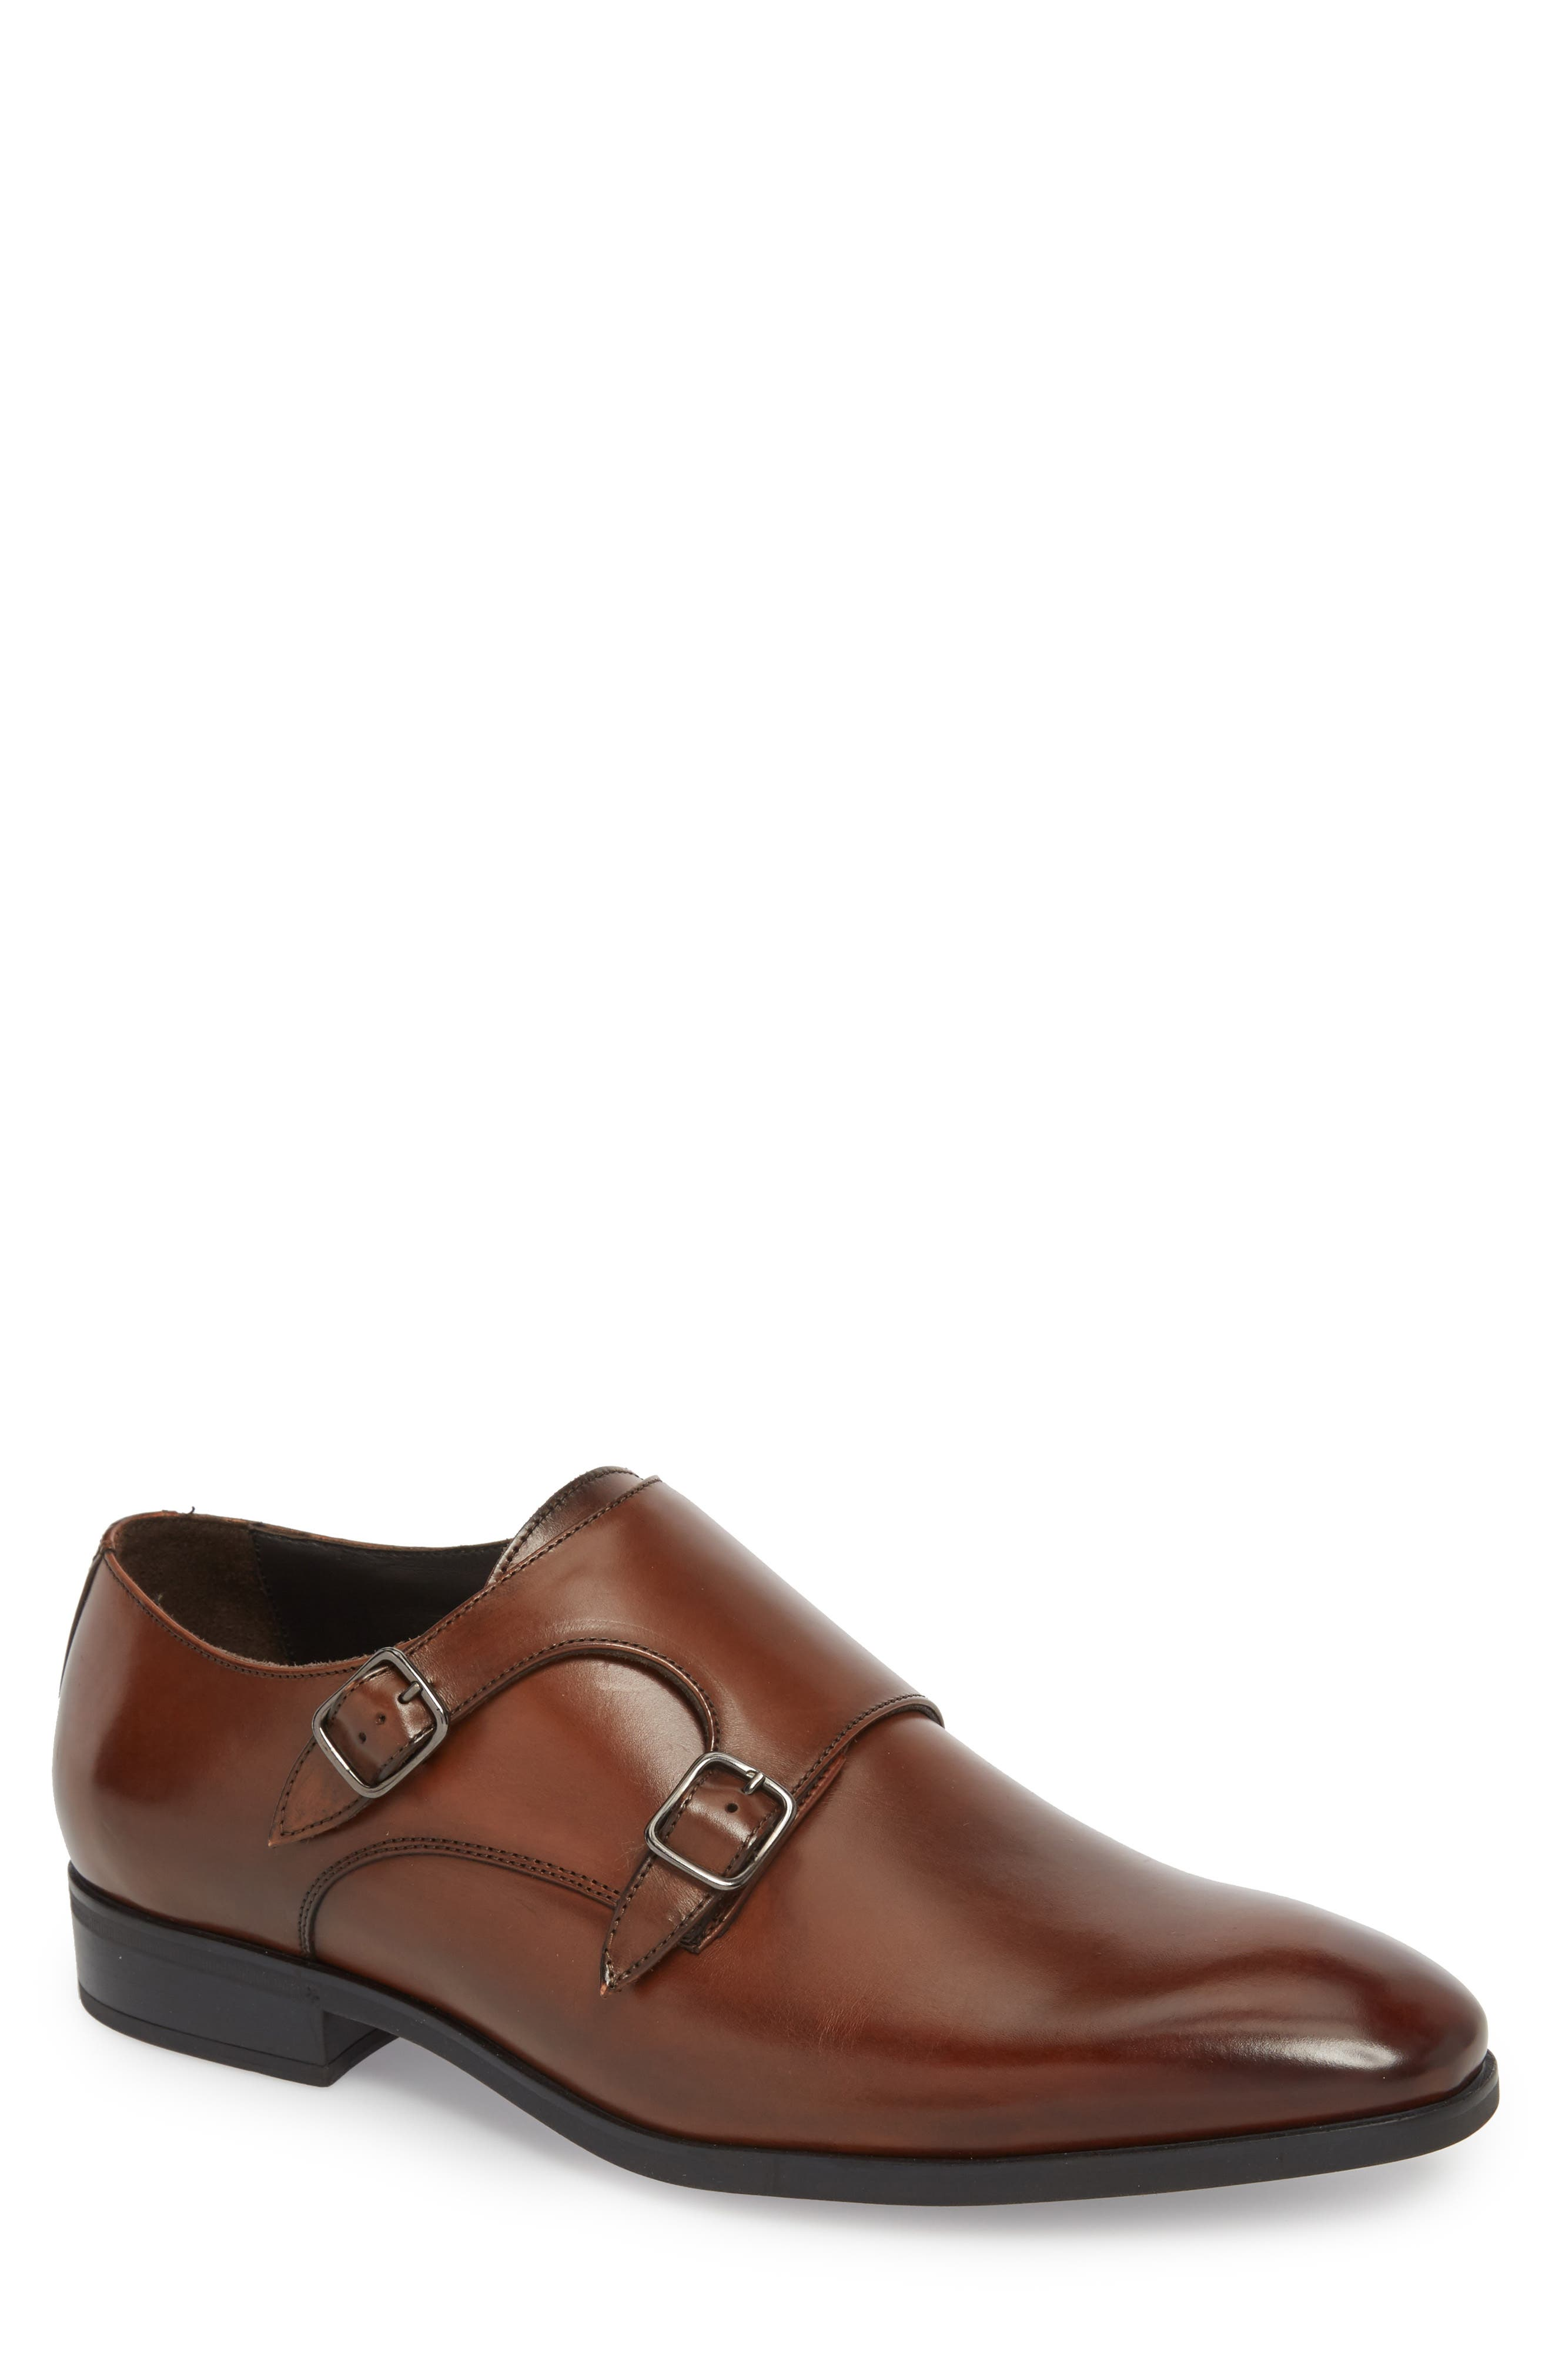 To Boot New York Benjamin Double Monk Strap Shoe, Brown